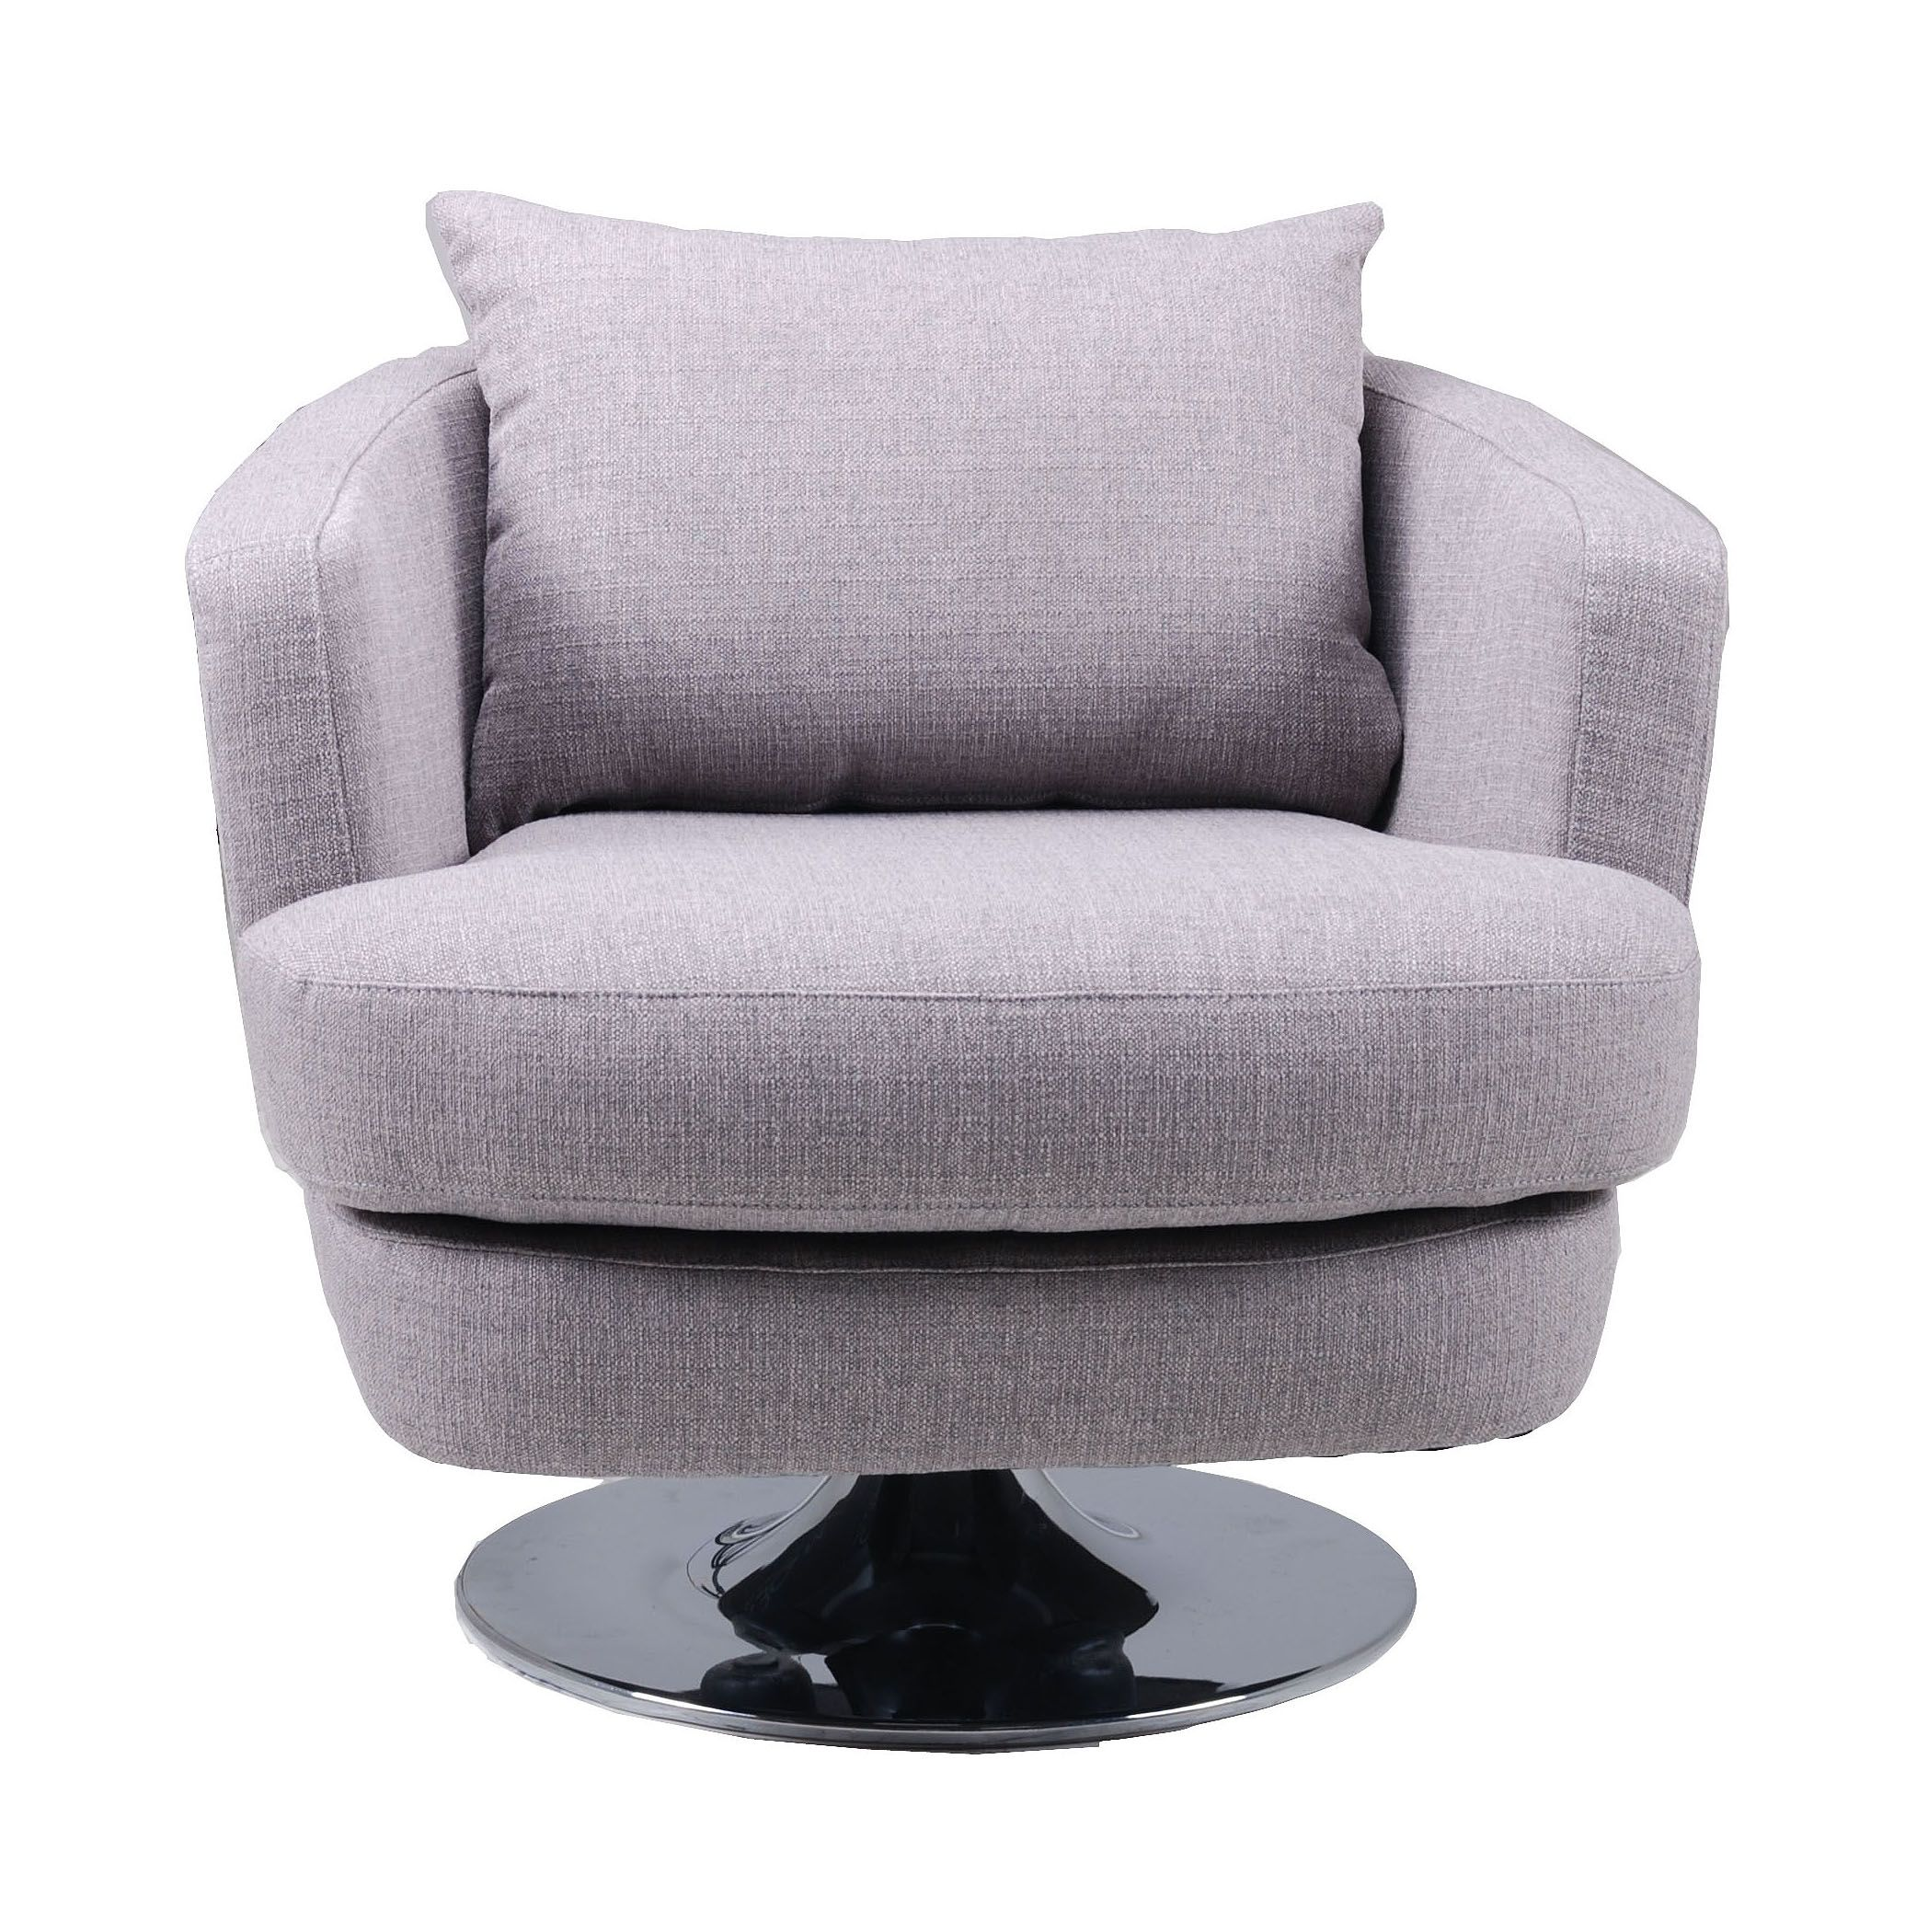 Our Rahim Swivel Chair is bound to leave a lasting impression on guests. Its comfort and modern style is not to be forgotten.